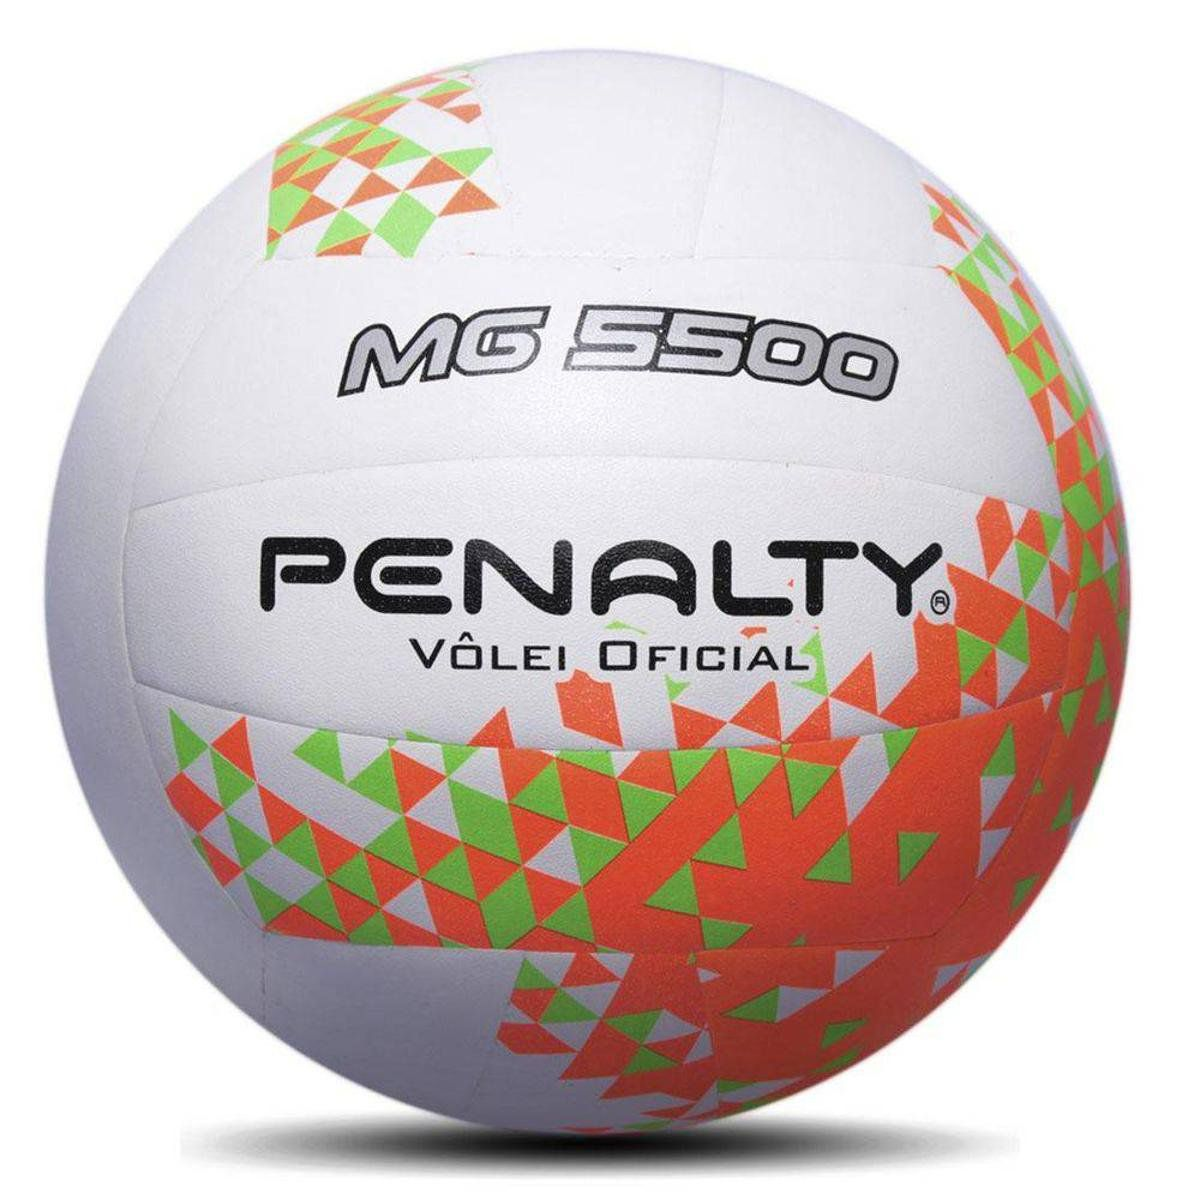 Bola Vôlei Penalty MG 5500 VIII Oficial